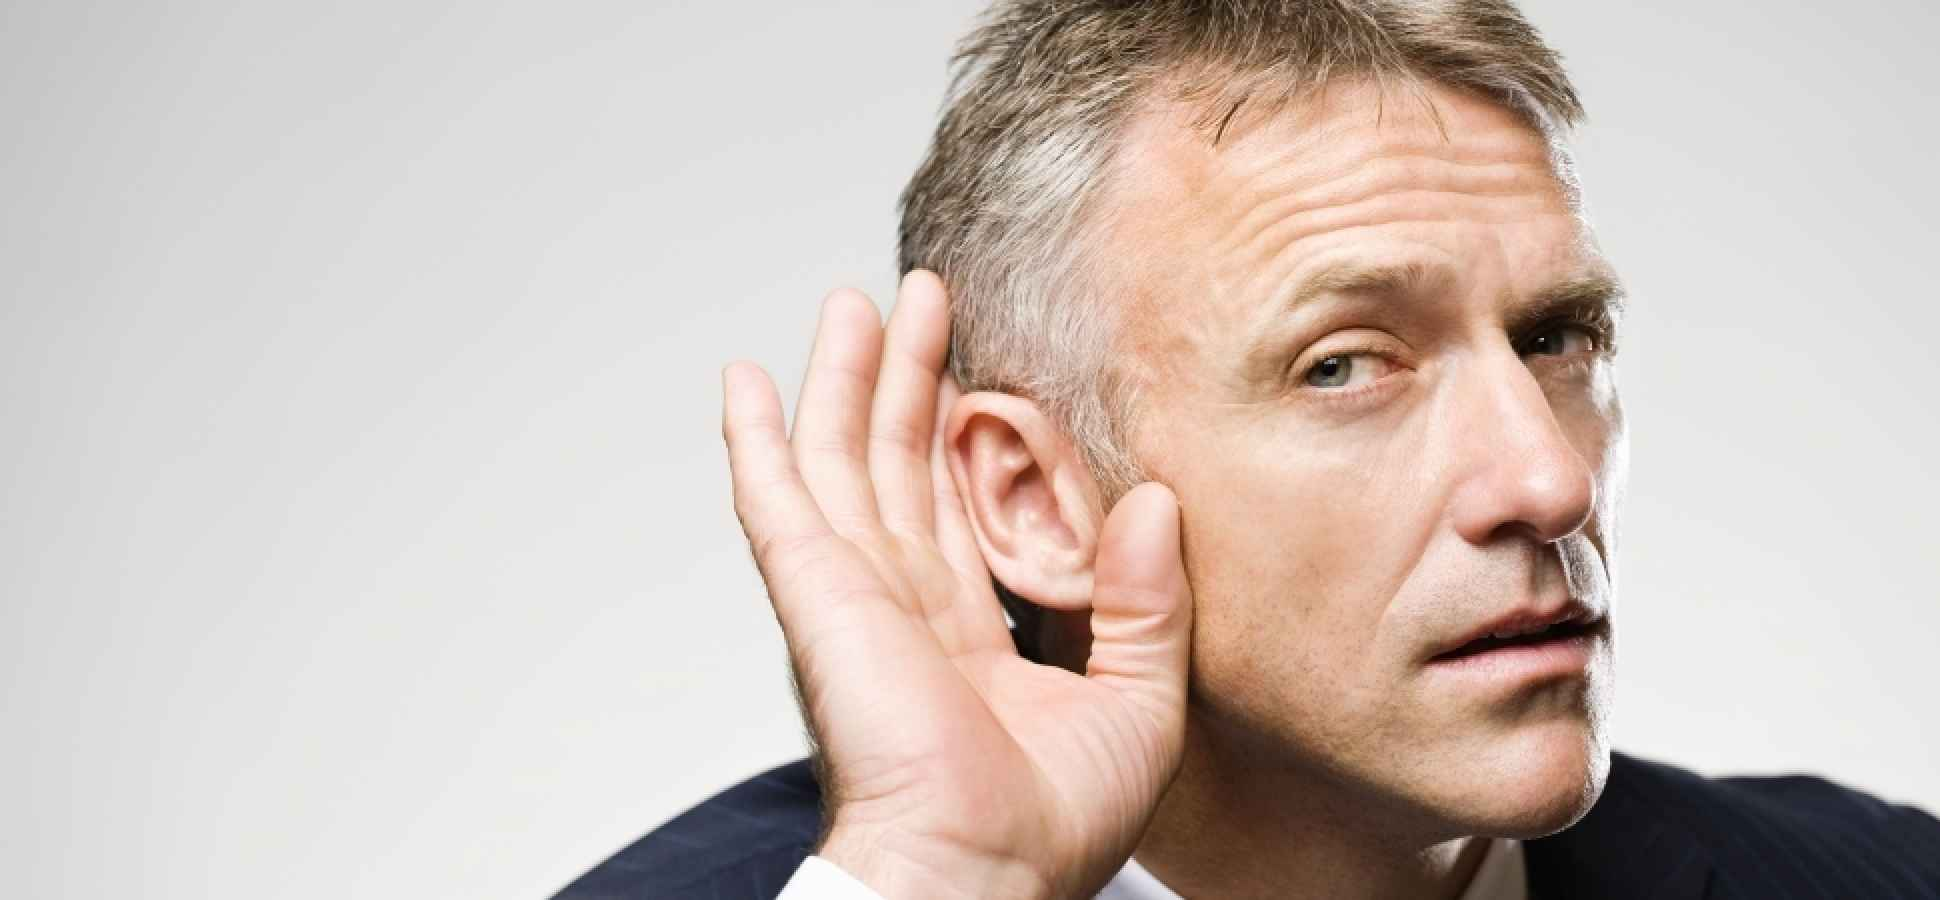 Why the Best Leaders Always Listen First